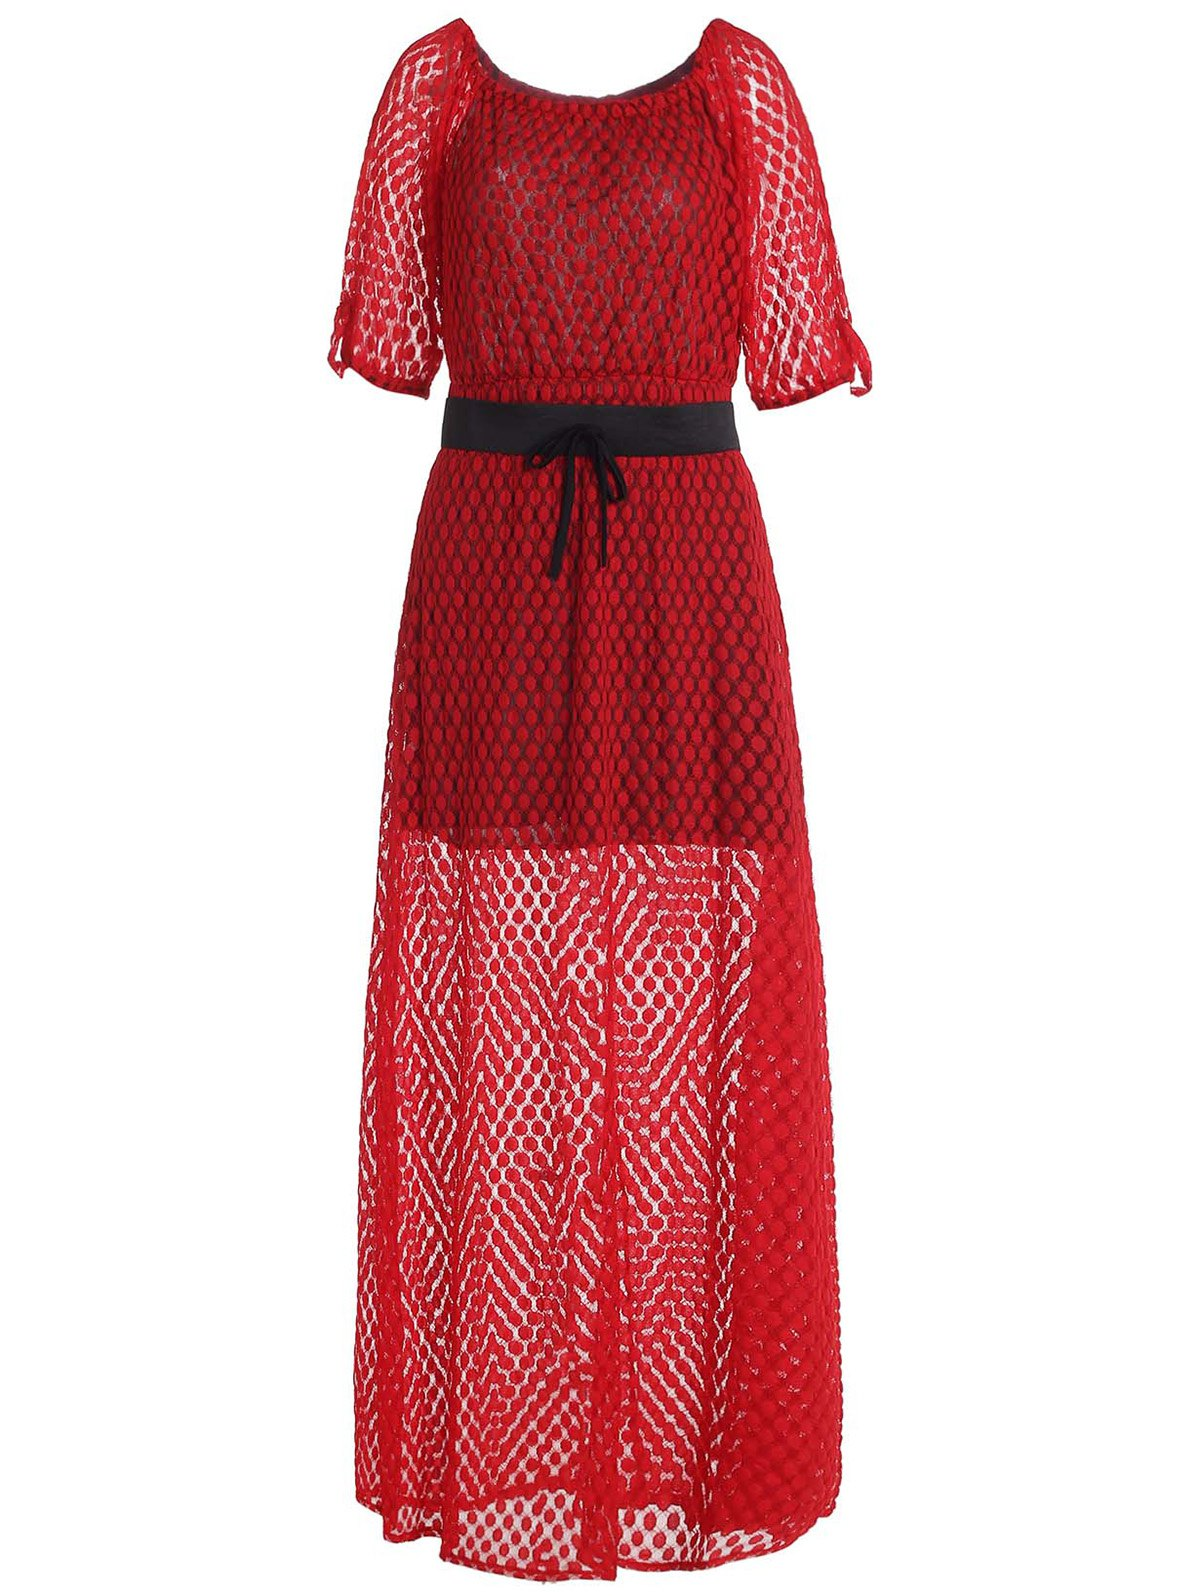 Charming Printed Slash Neck 3/4 Sleeve Dress For Women - RED XL